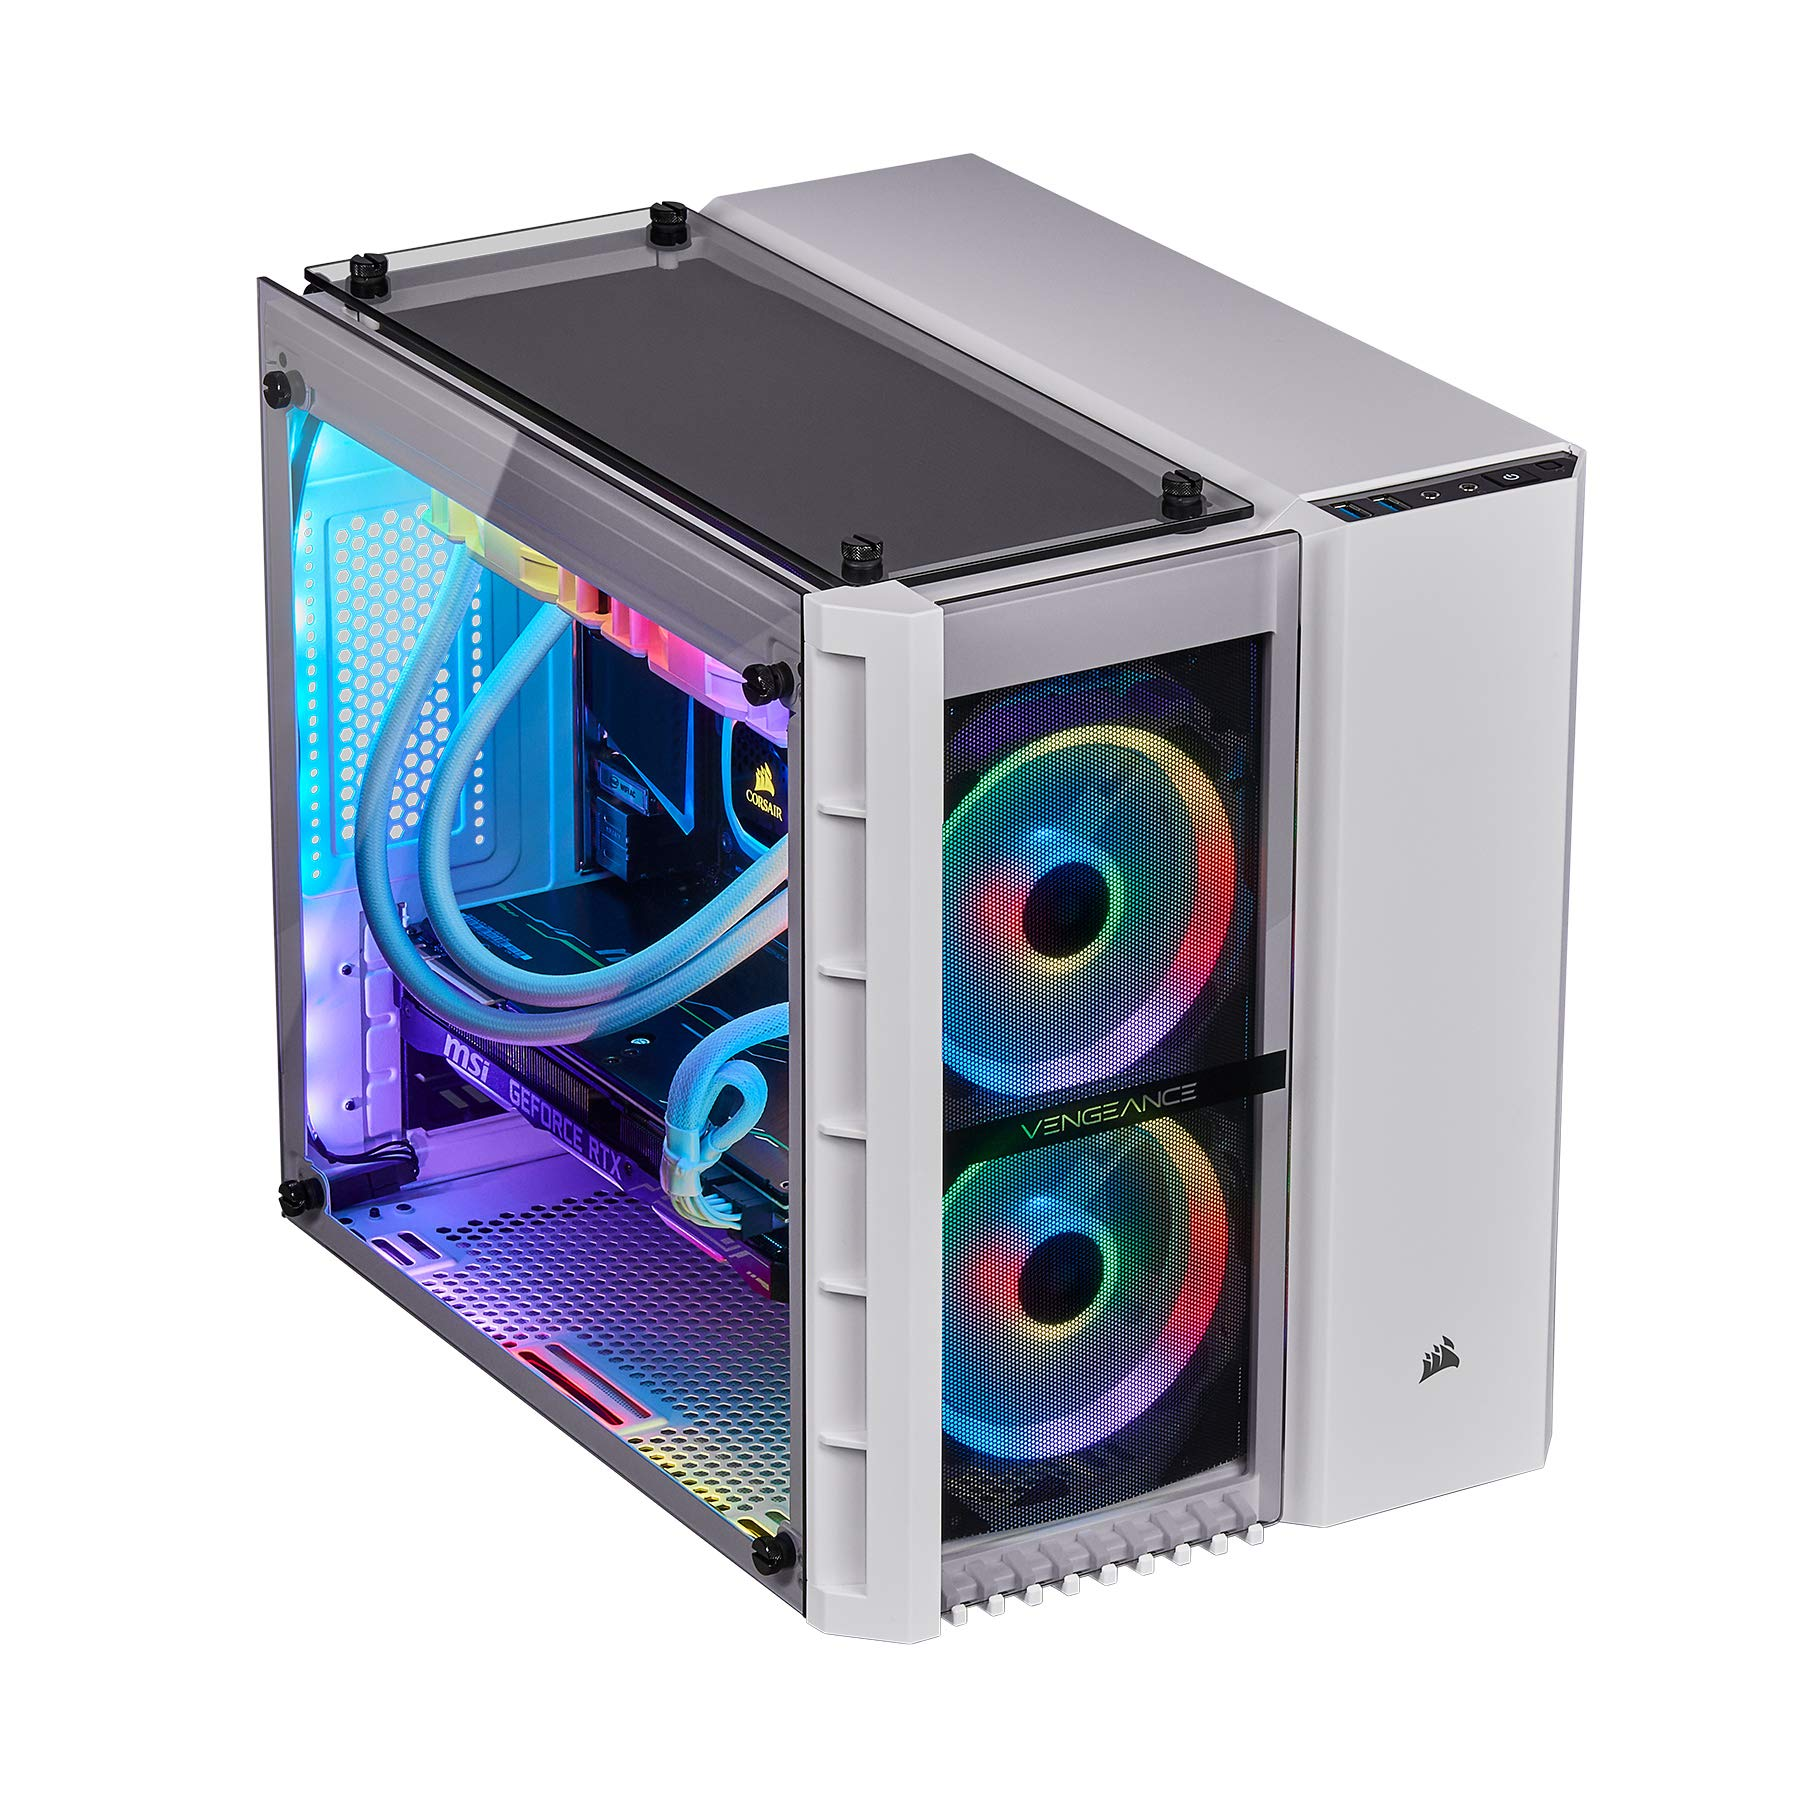 CORSAIR Vengeance 5189 Gaming PC, i7-9700K, RTX 2080, Z390, 960GB M.2 SSD, 32GB DDR4-3000, Win 10 Home - White by Corsair